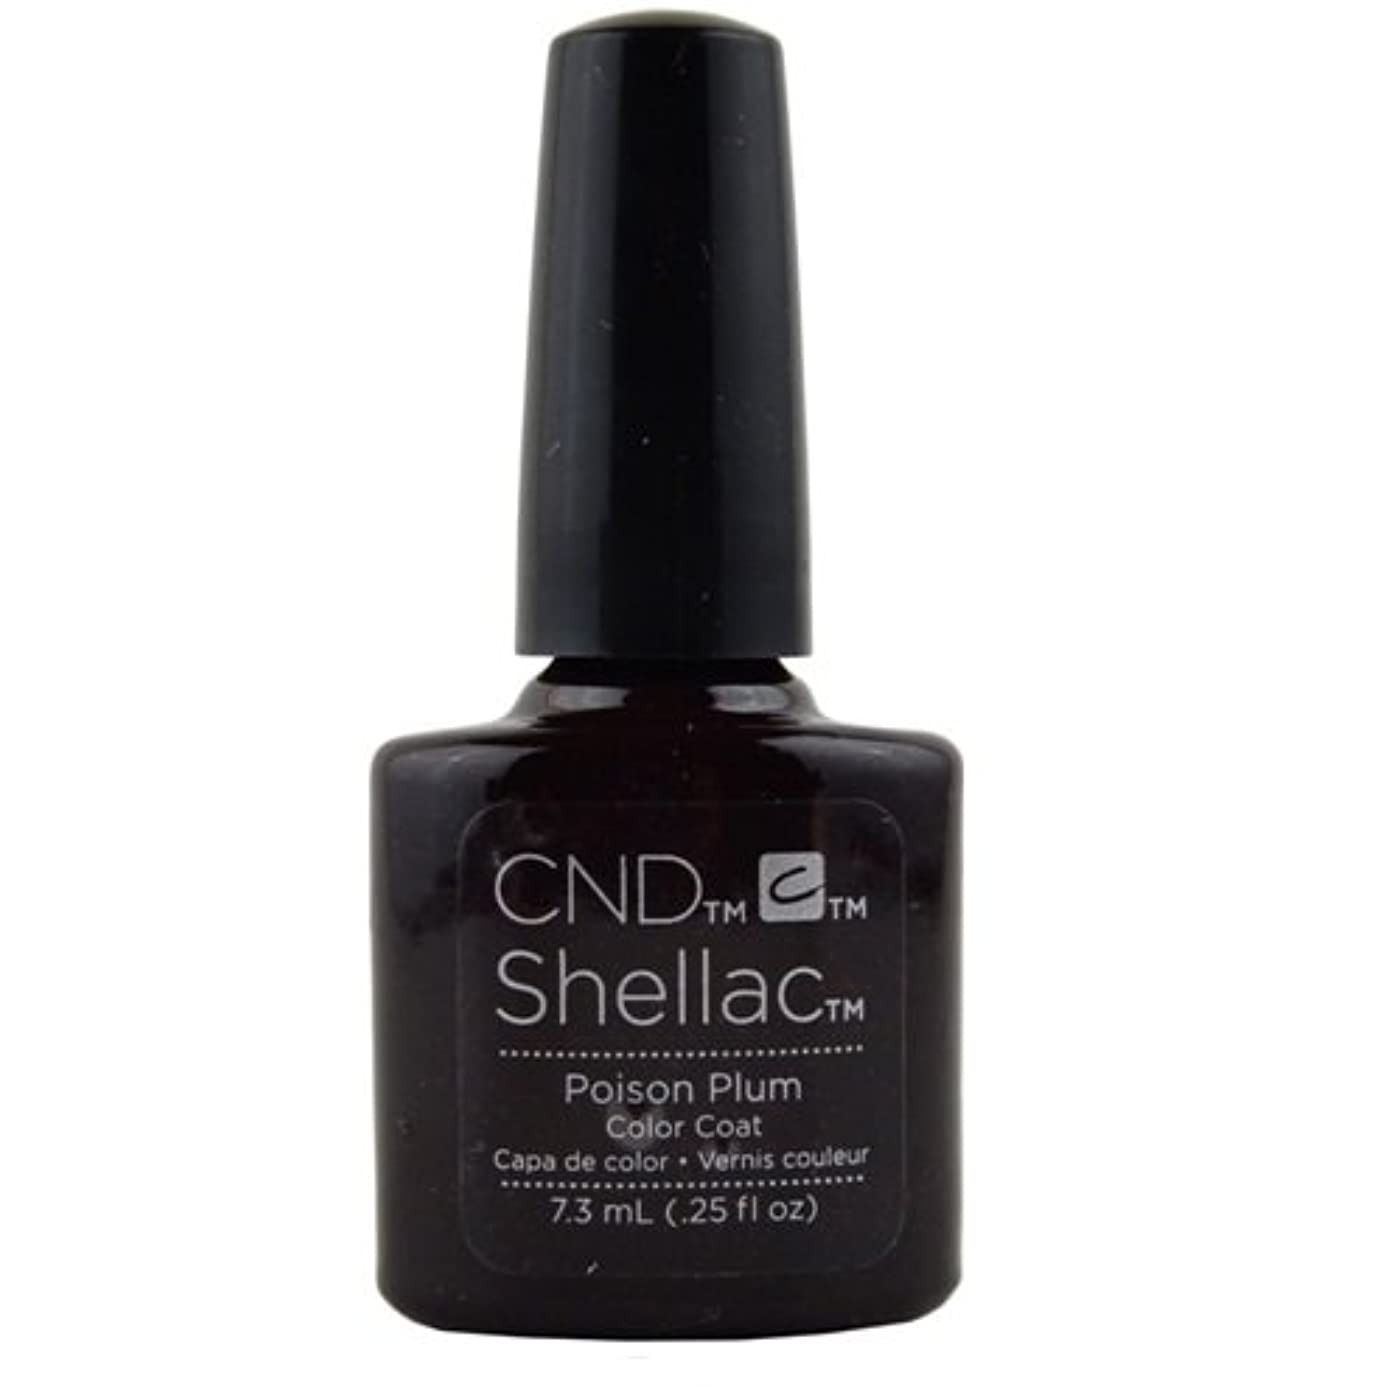 カルシウム認識アカデミーCND Shellac Gel Polish - Poison Plum - 0.25oz / 7.3ml